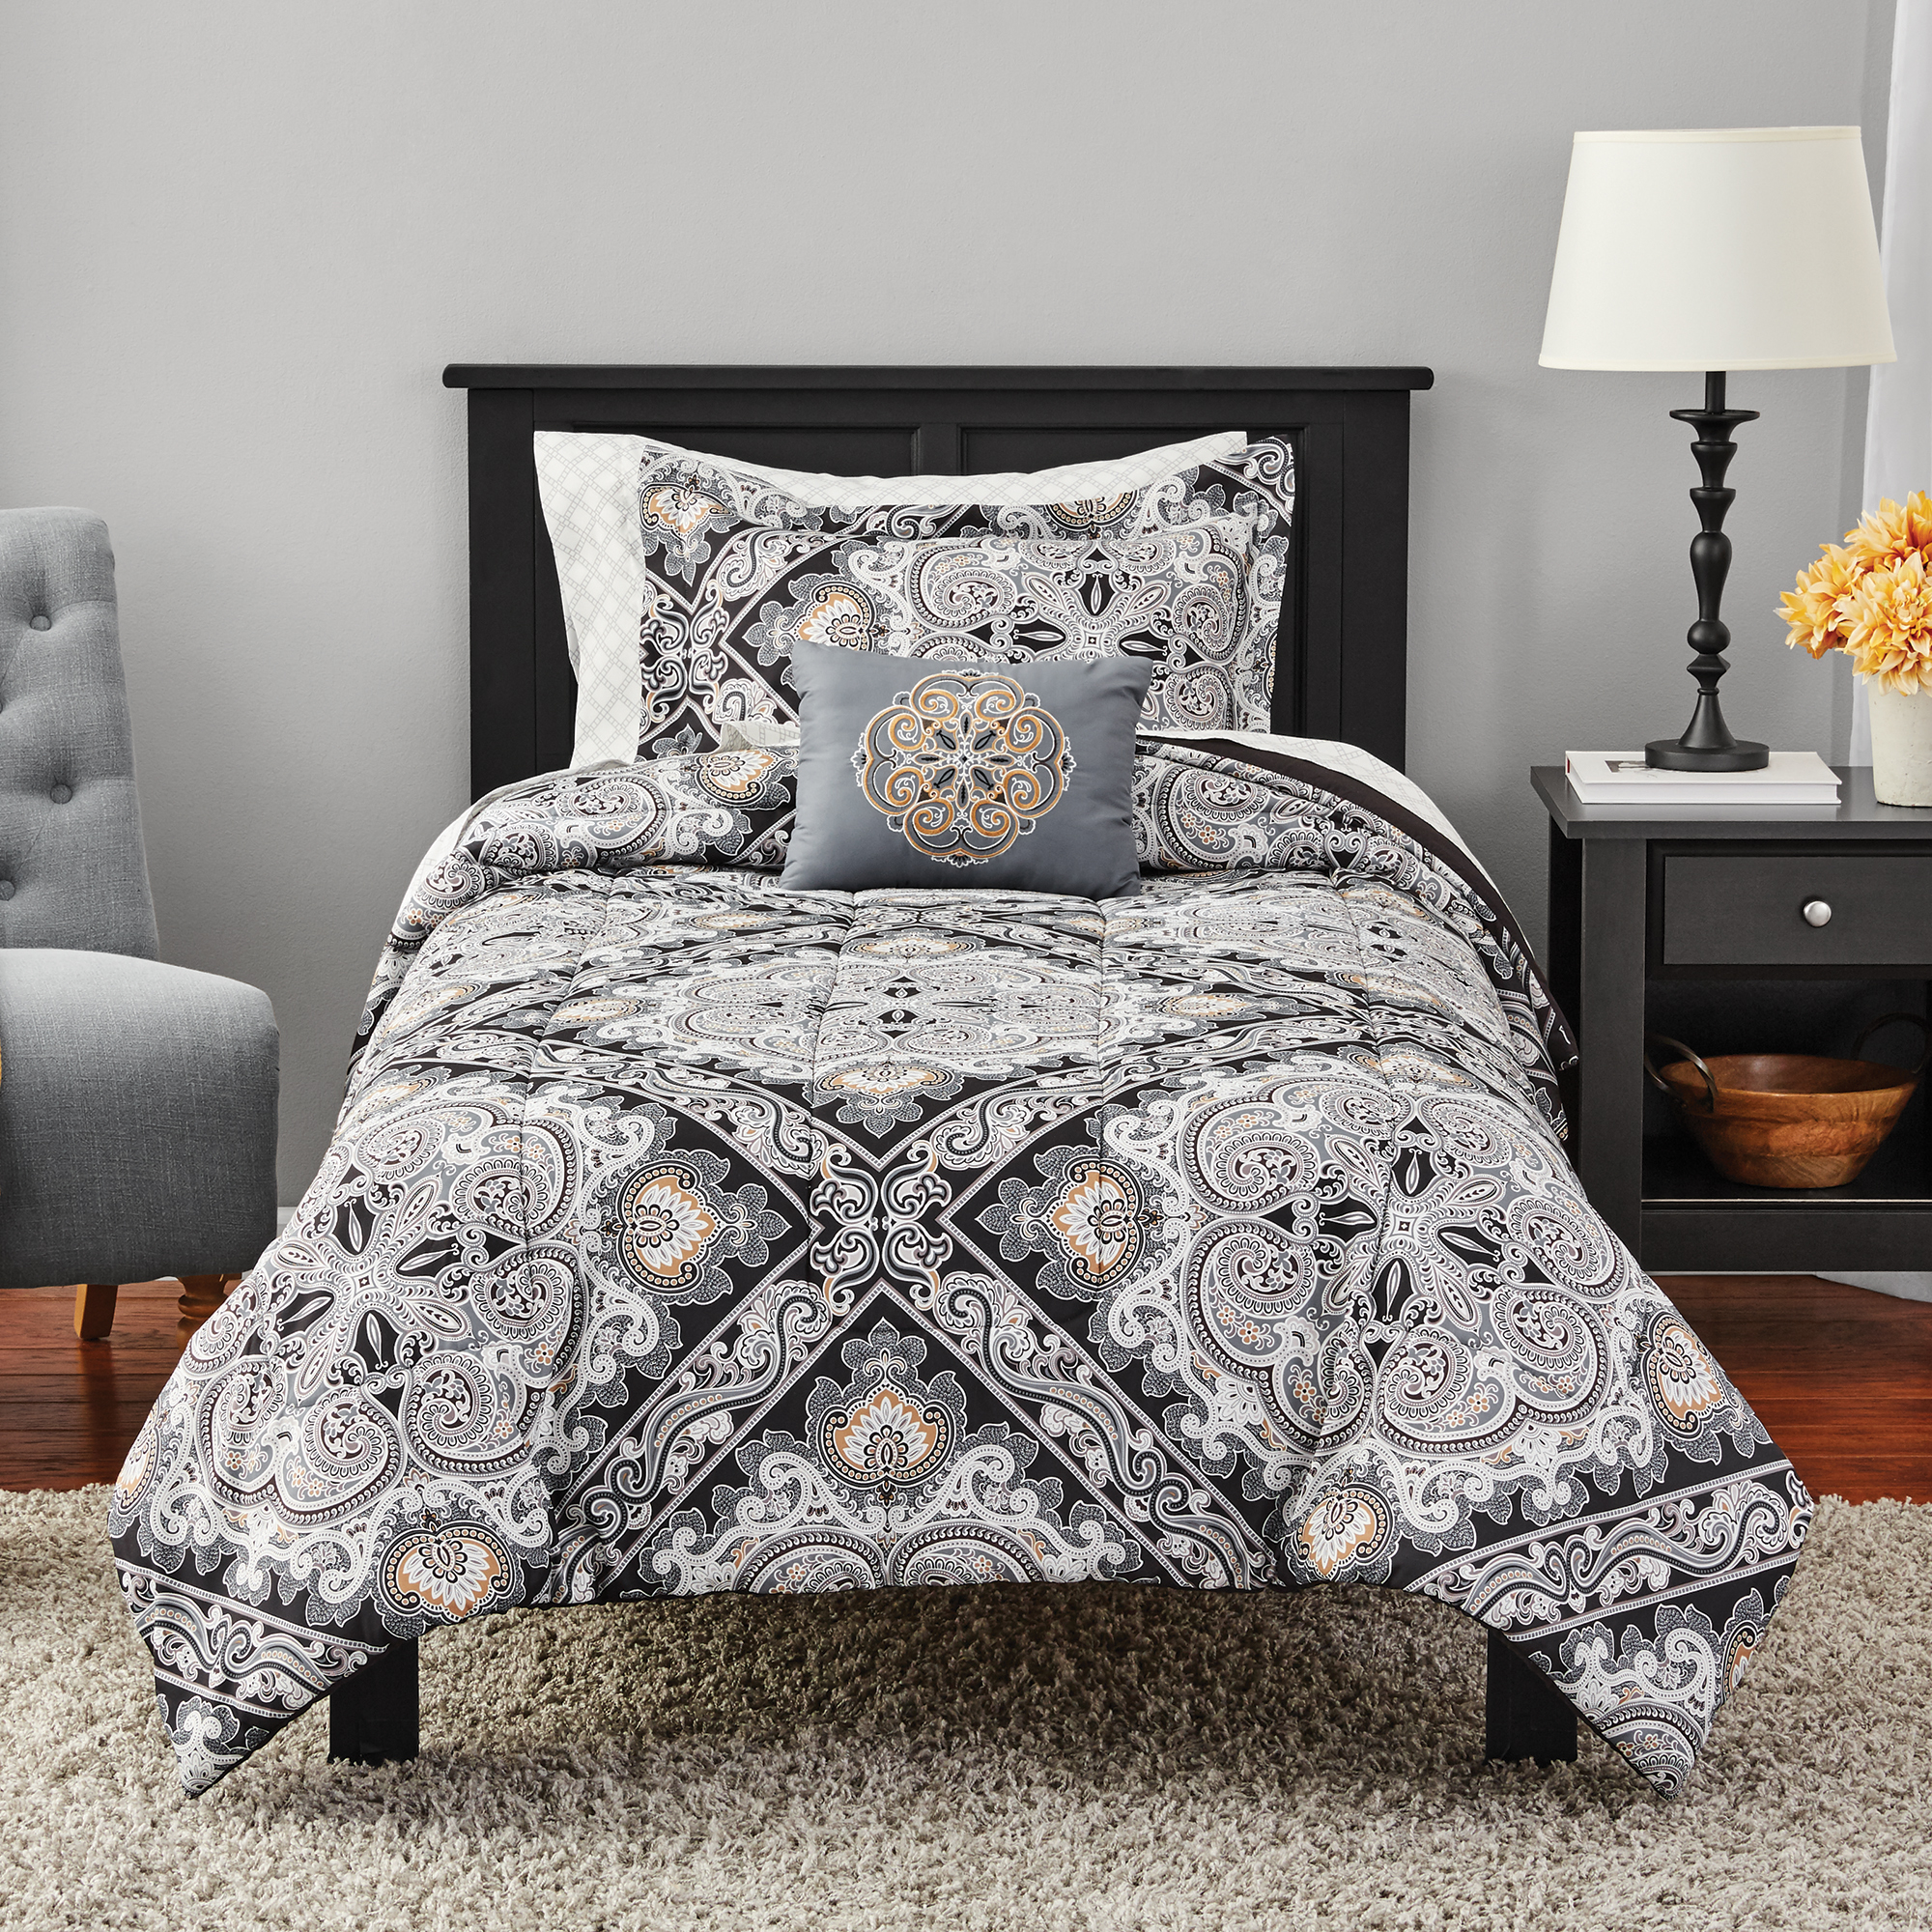 Mainstays Black Diamond Complete Comforter Bedding